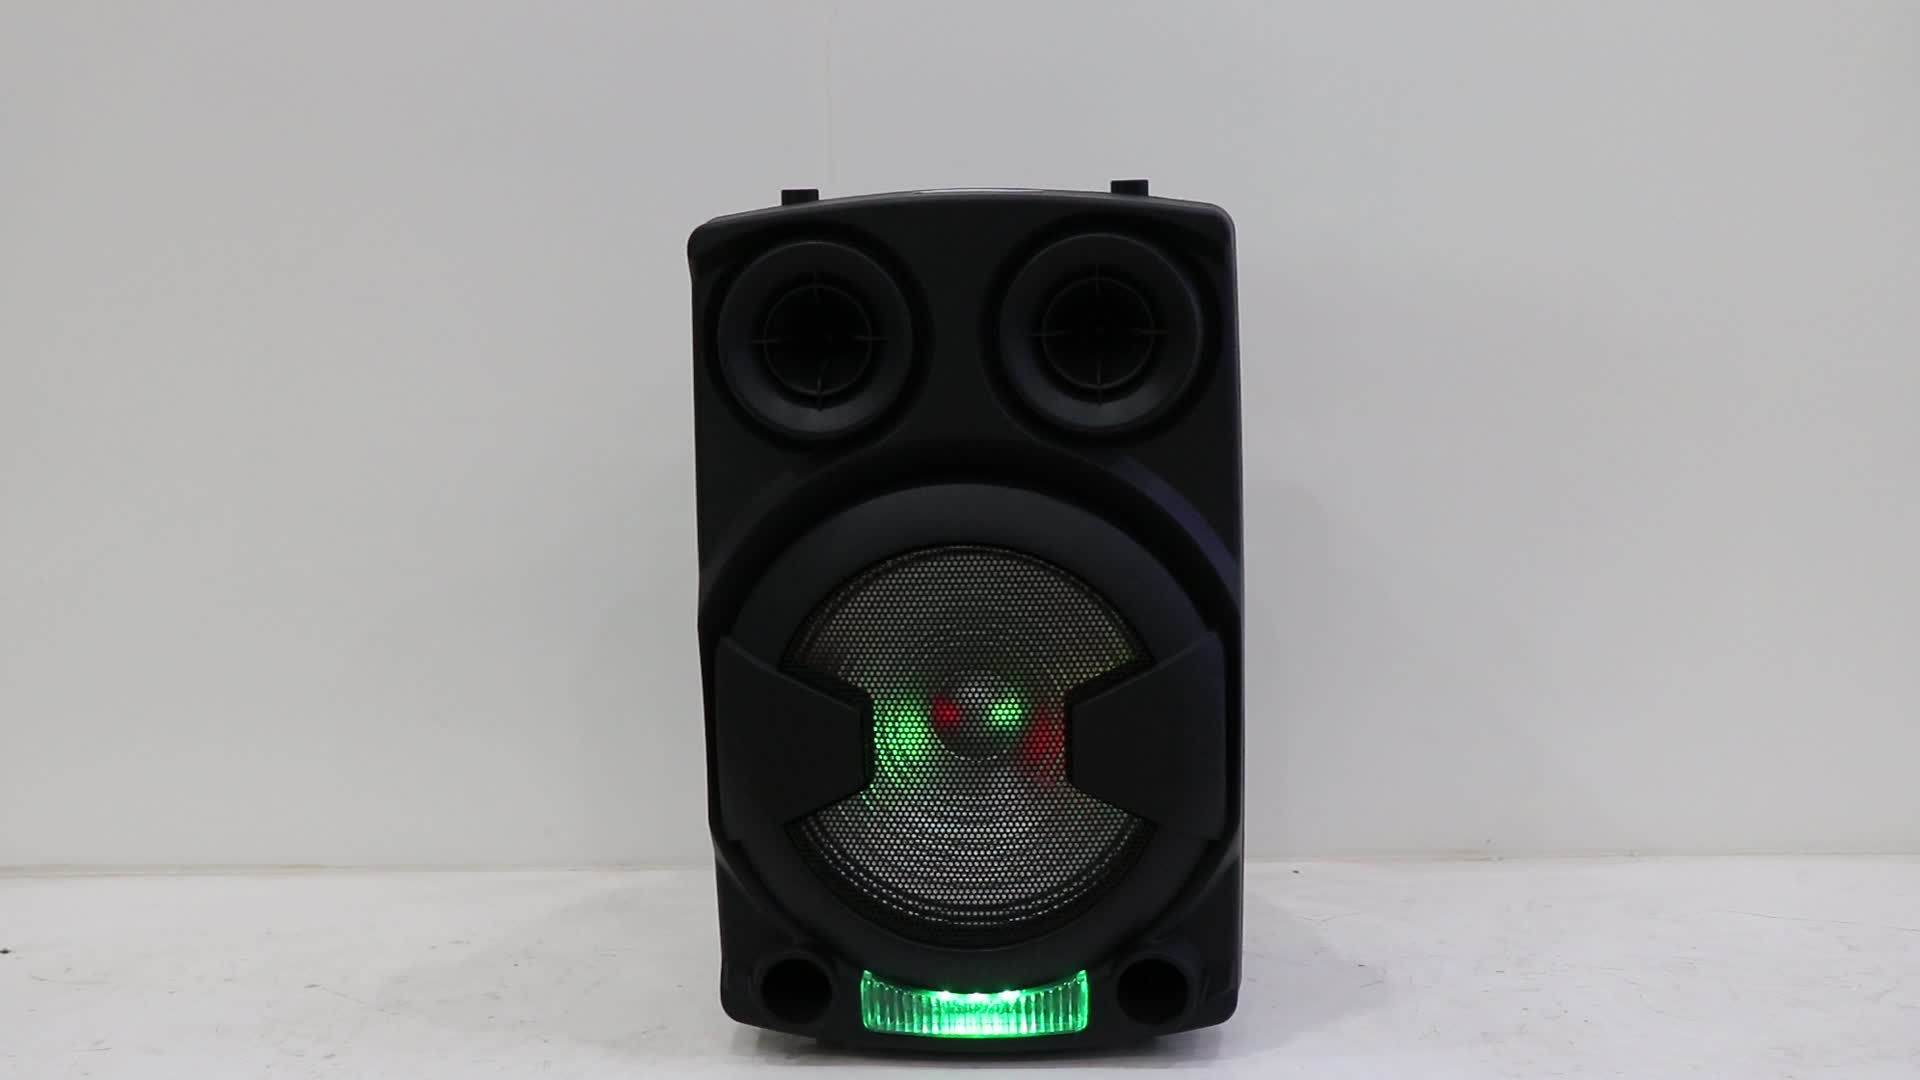 Plastic sound system portable dj wireless bt speaker with trolley and wheels